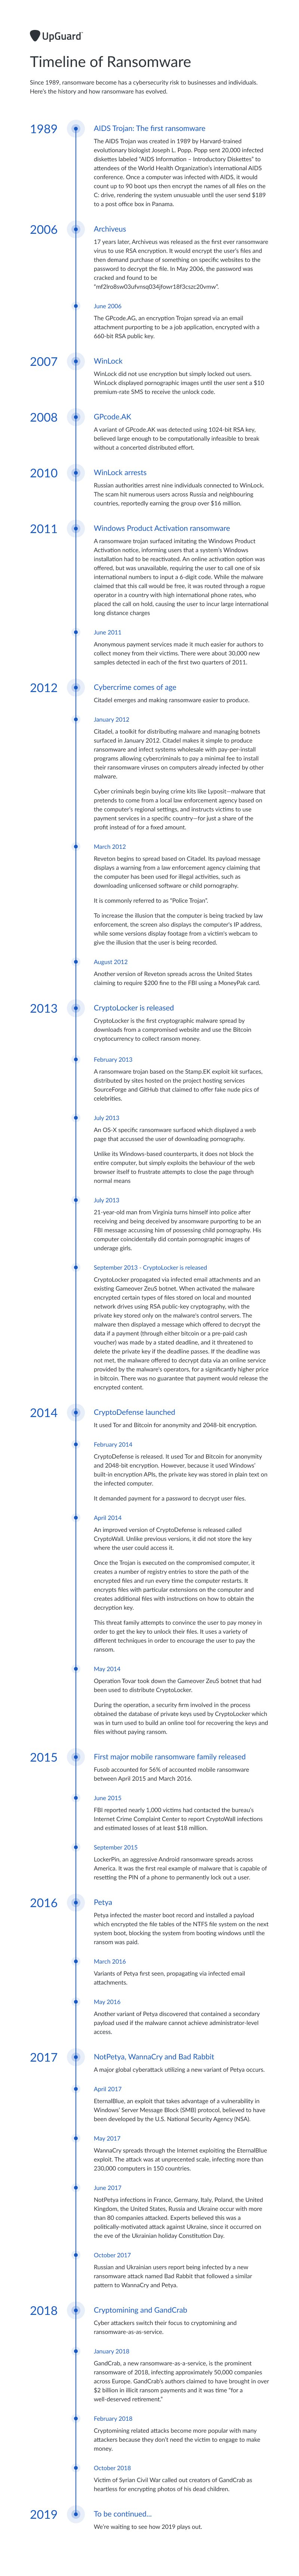 Ransomware timeline